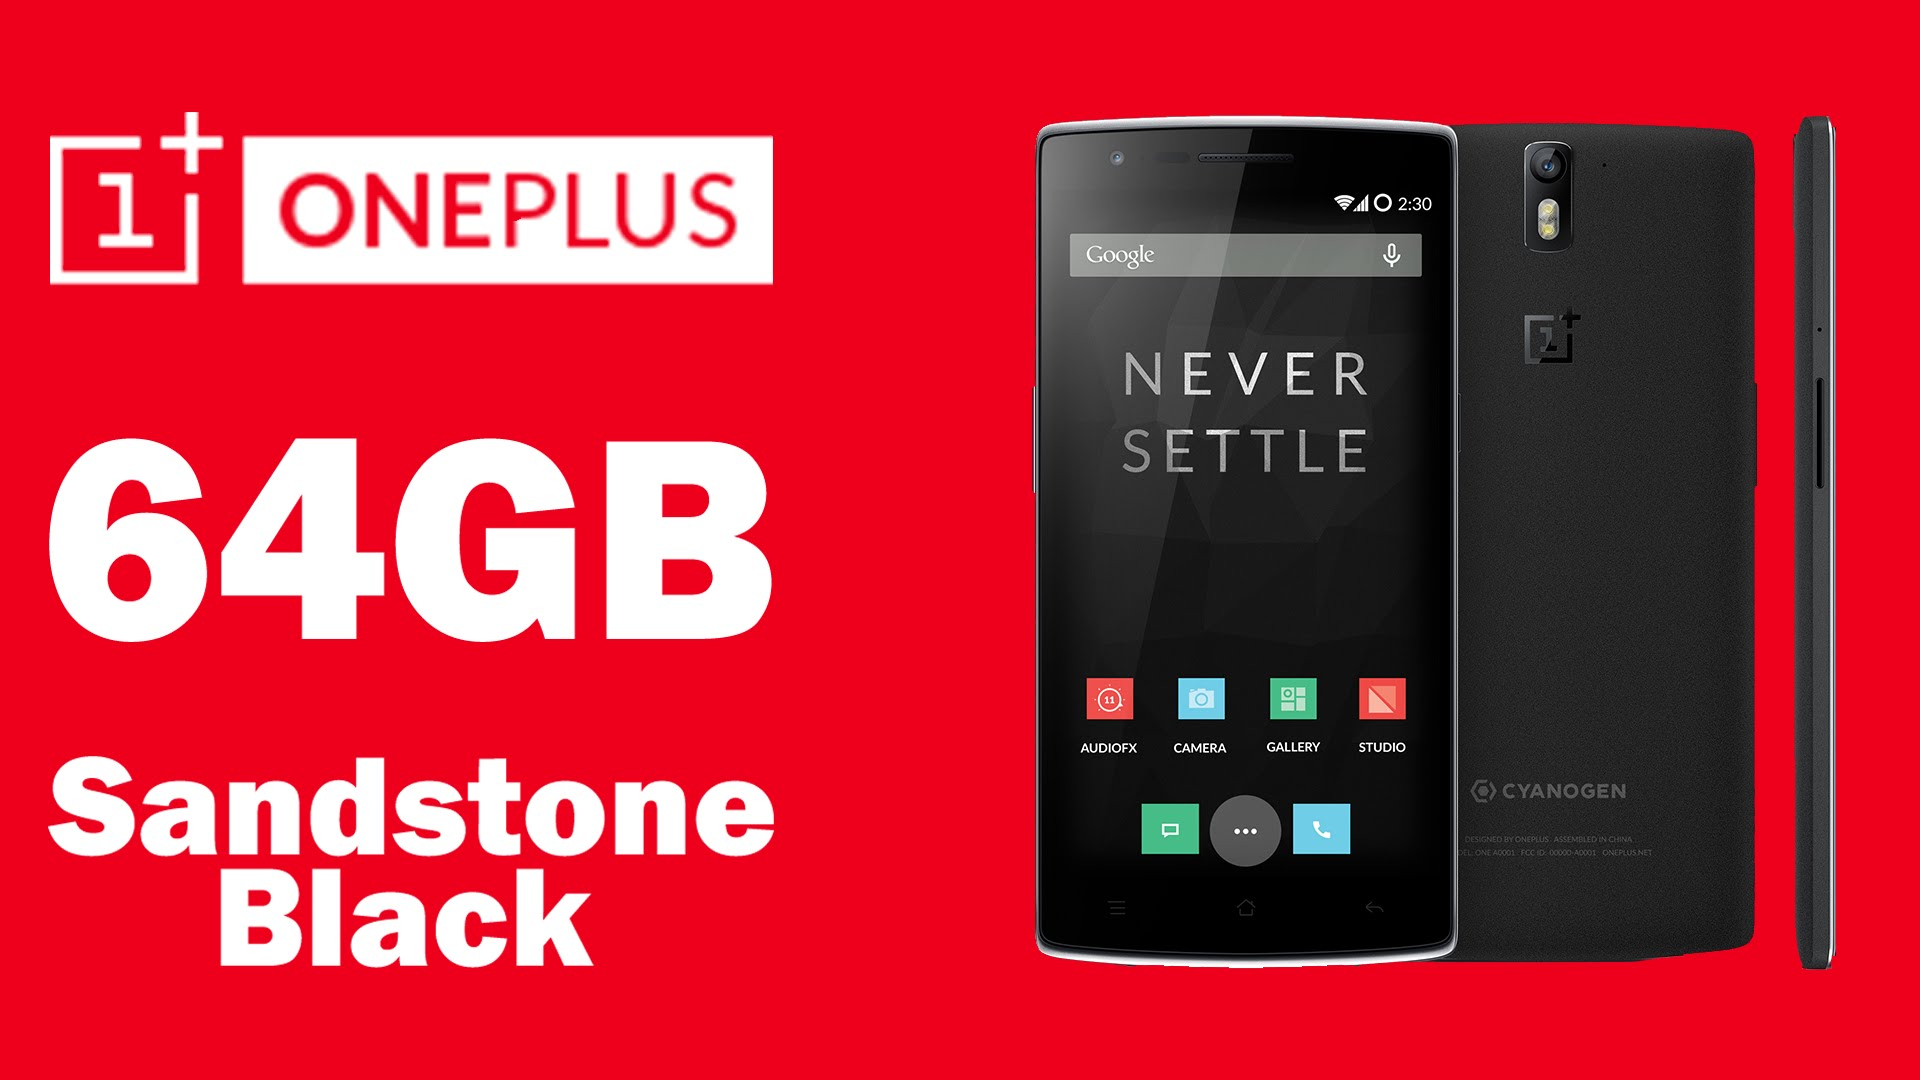 eBay: OnePlus One (Sandstone Black, 64GB) Preowned,Scratches+3 Months Seller Warranty